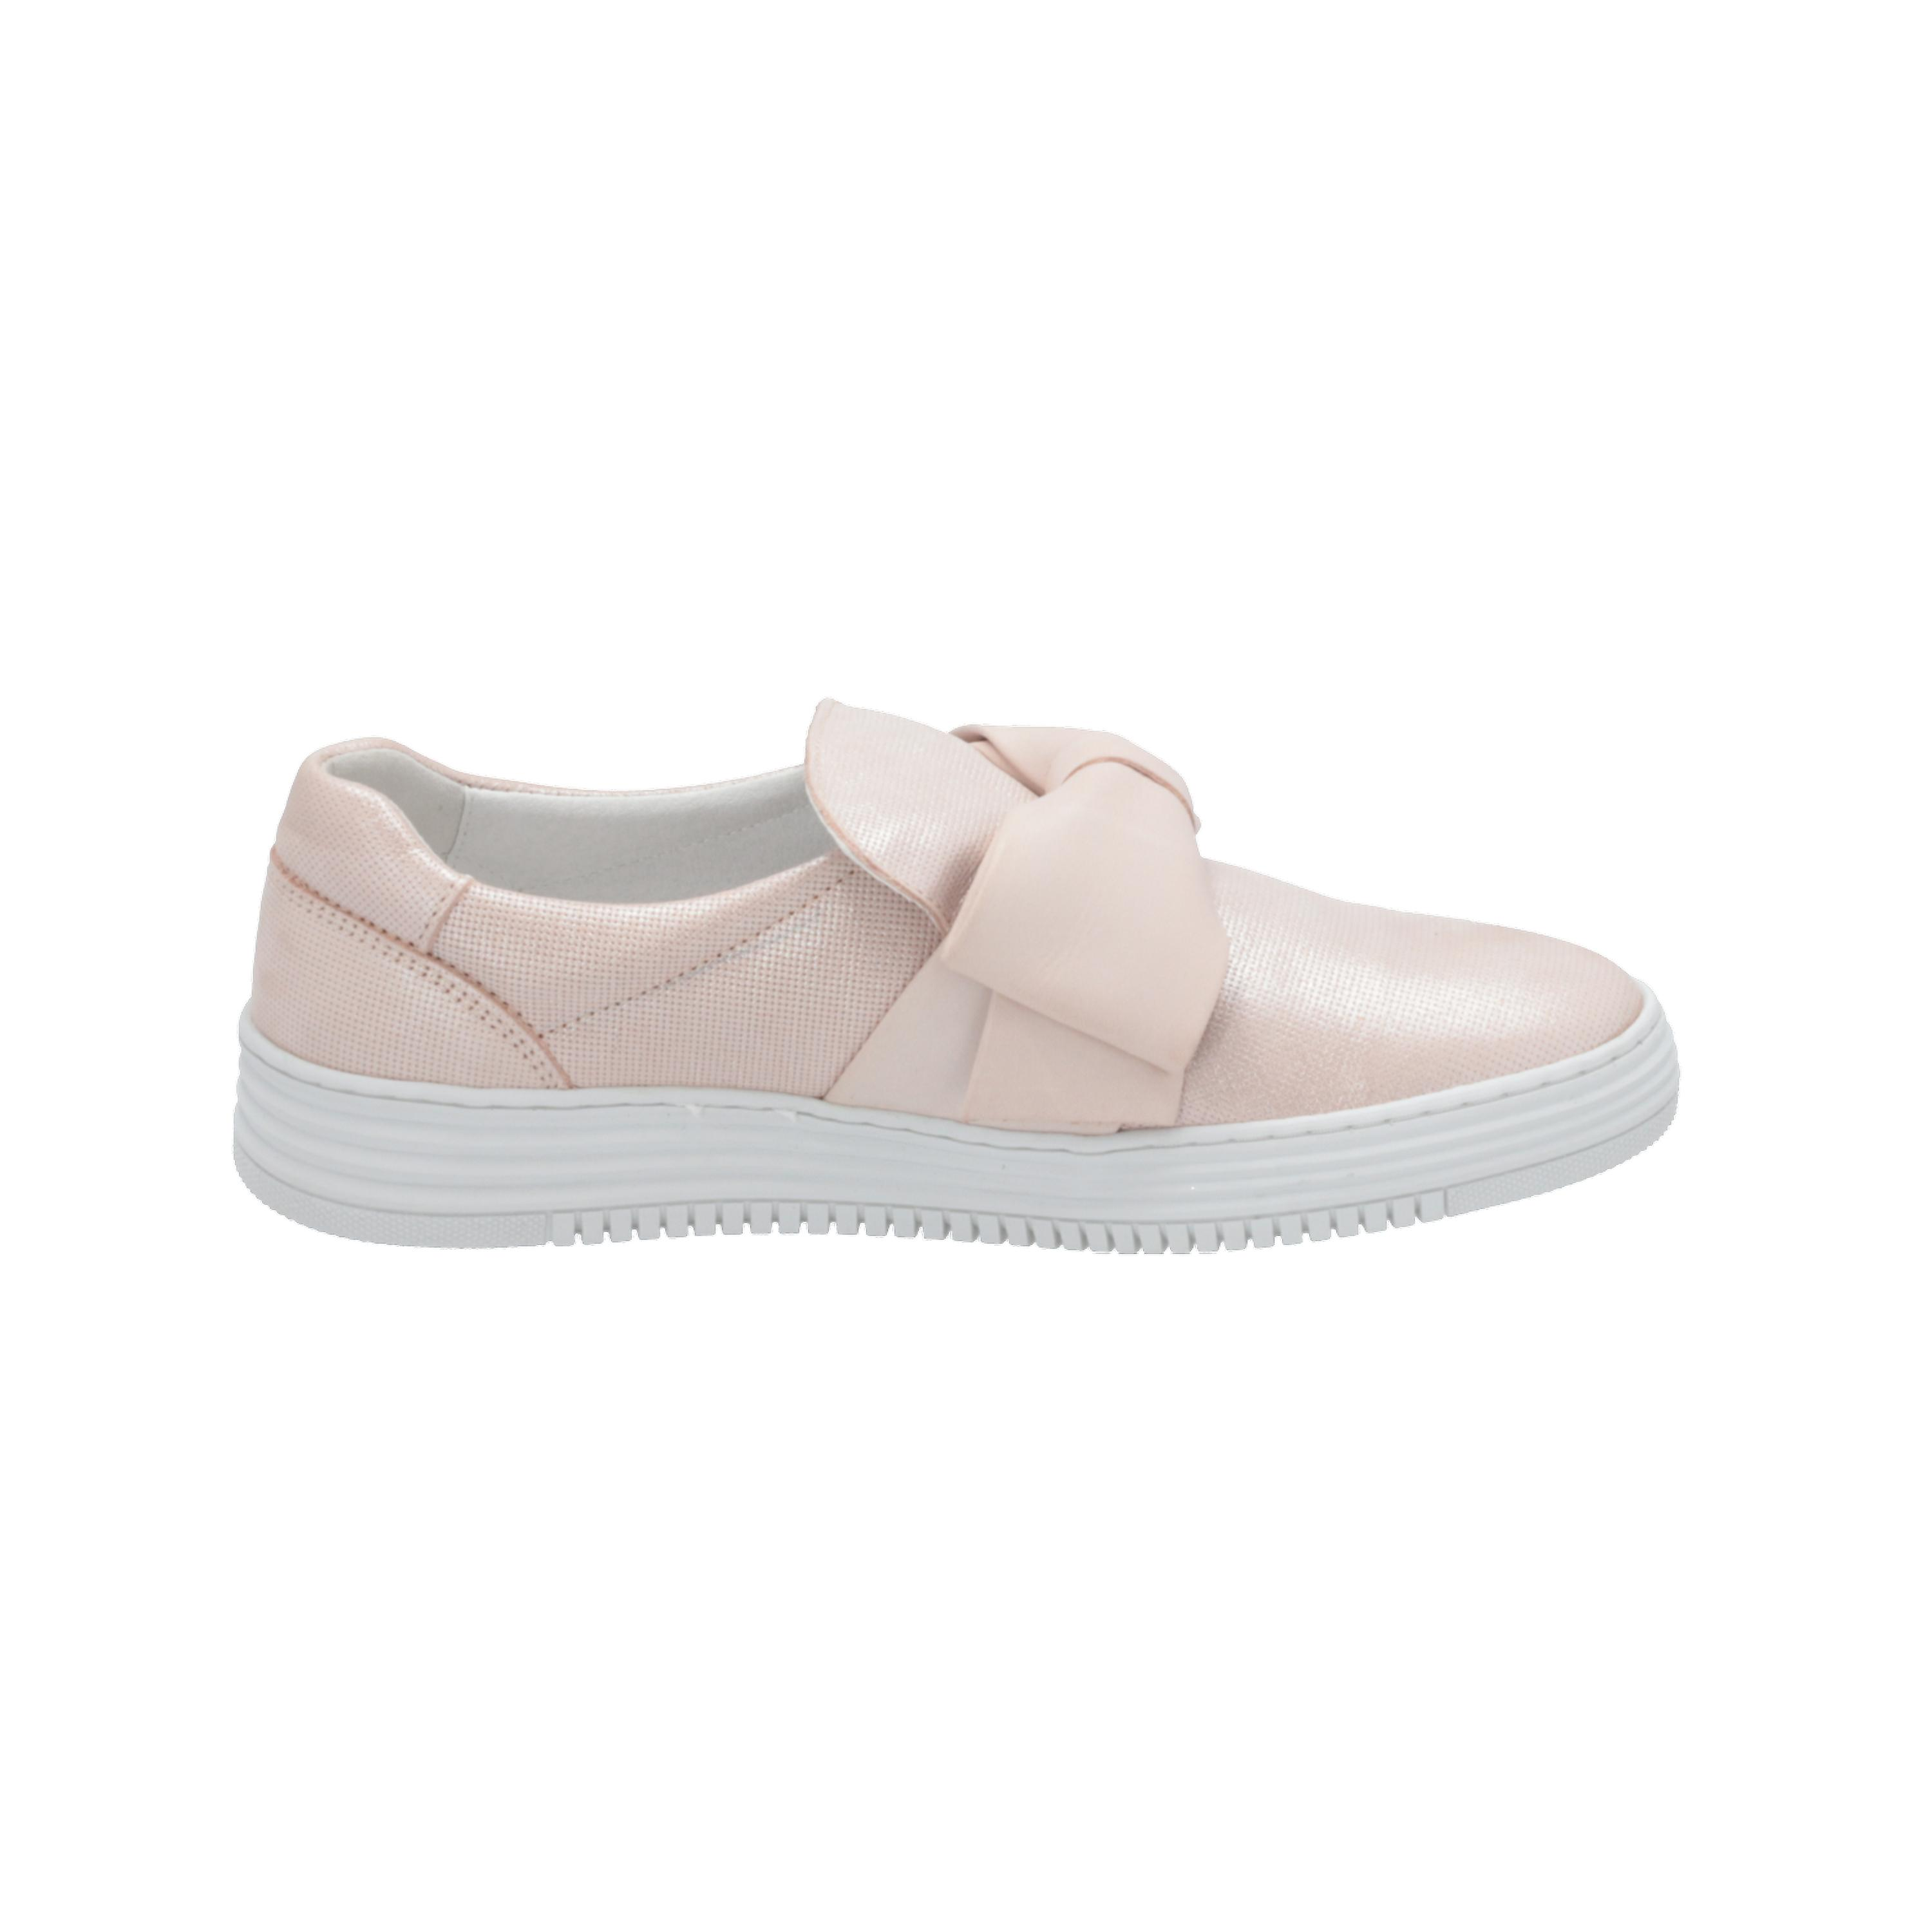 Bullboxer 420008E5L Women's Loafer Pink Slip-Ons Business Shoes